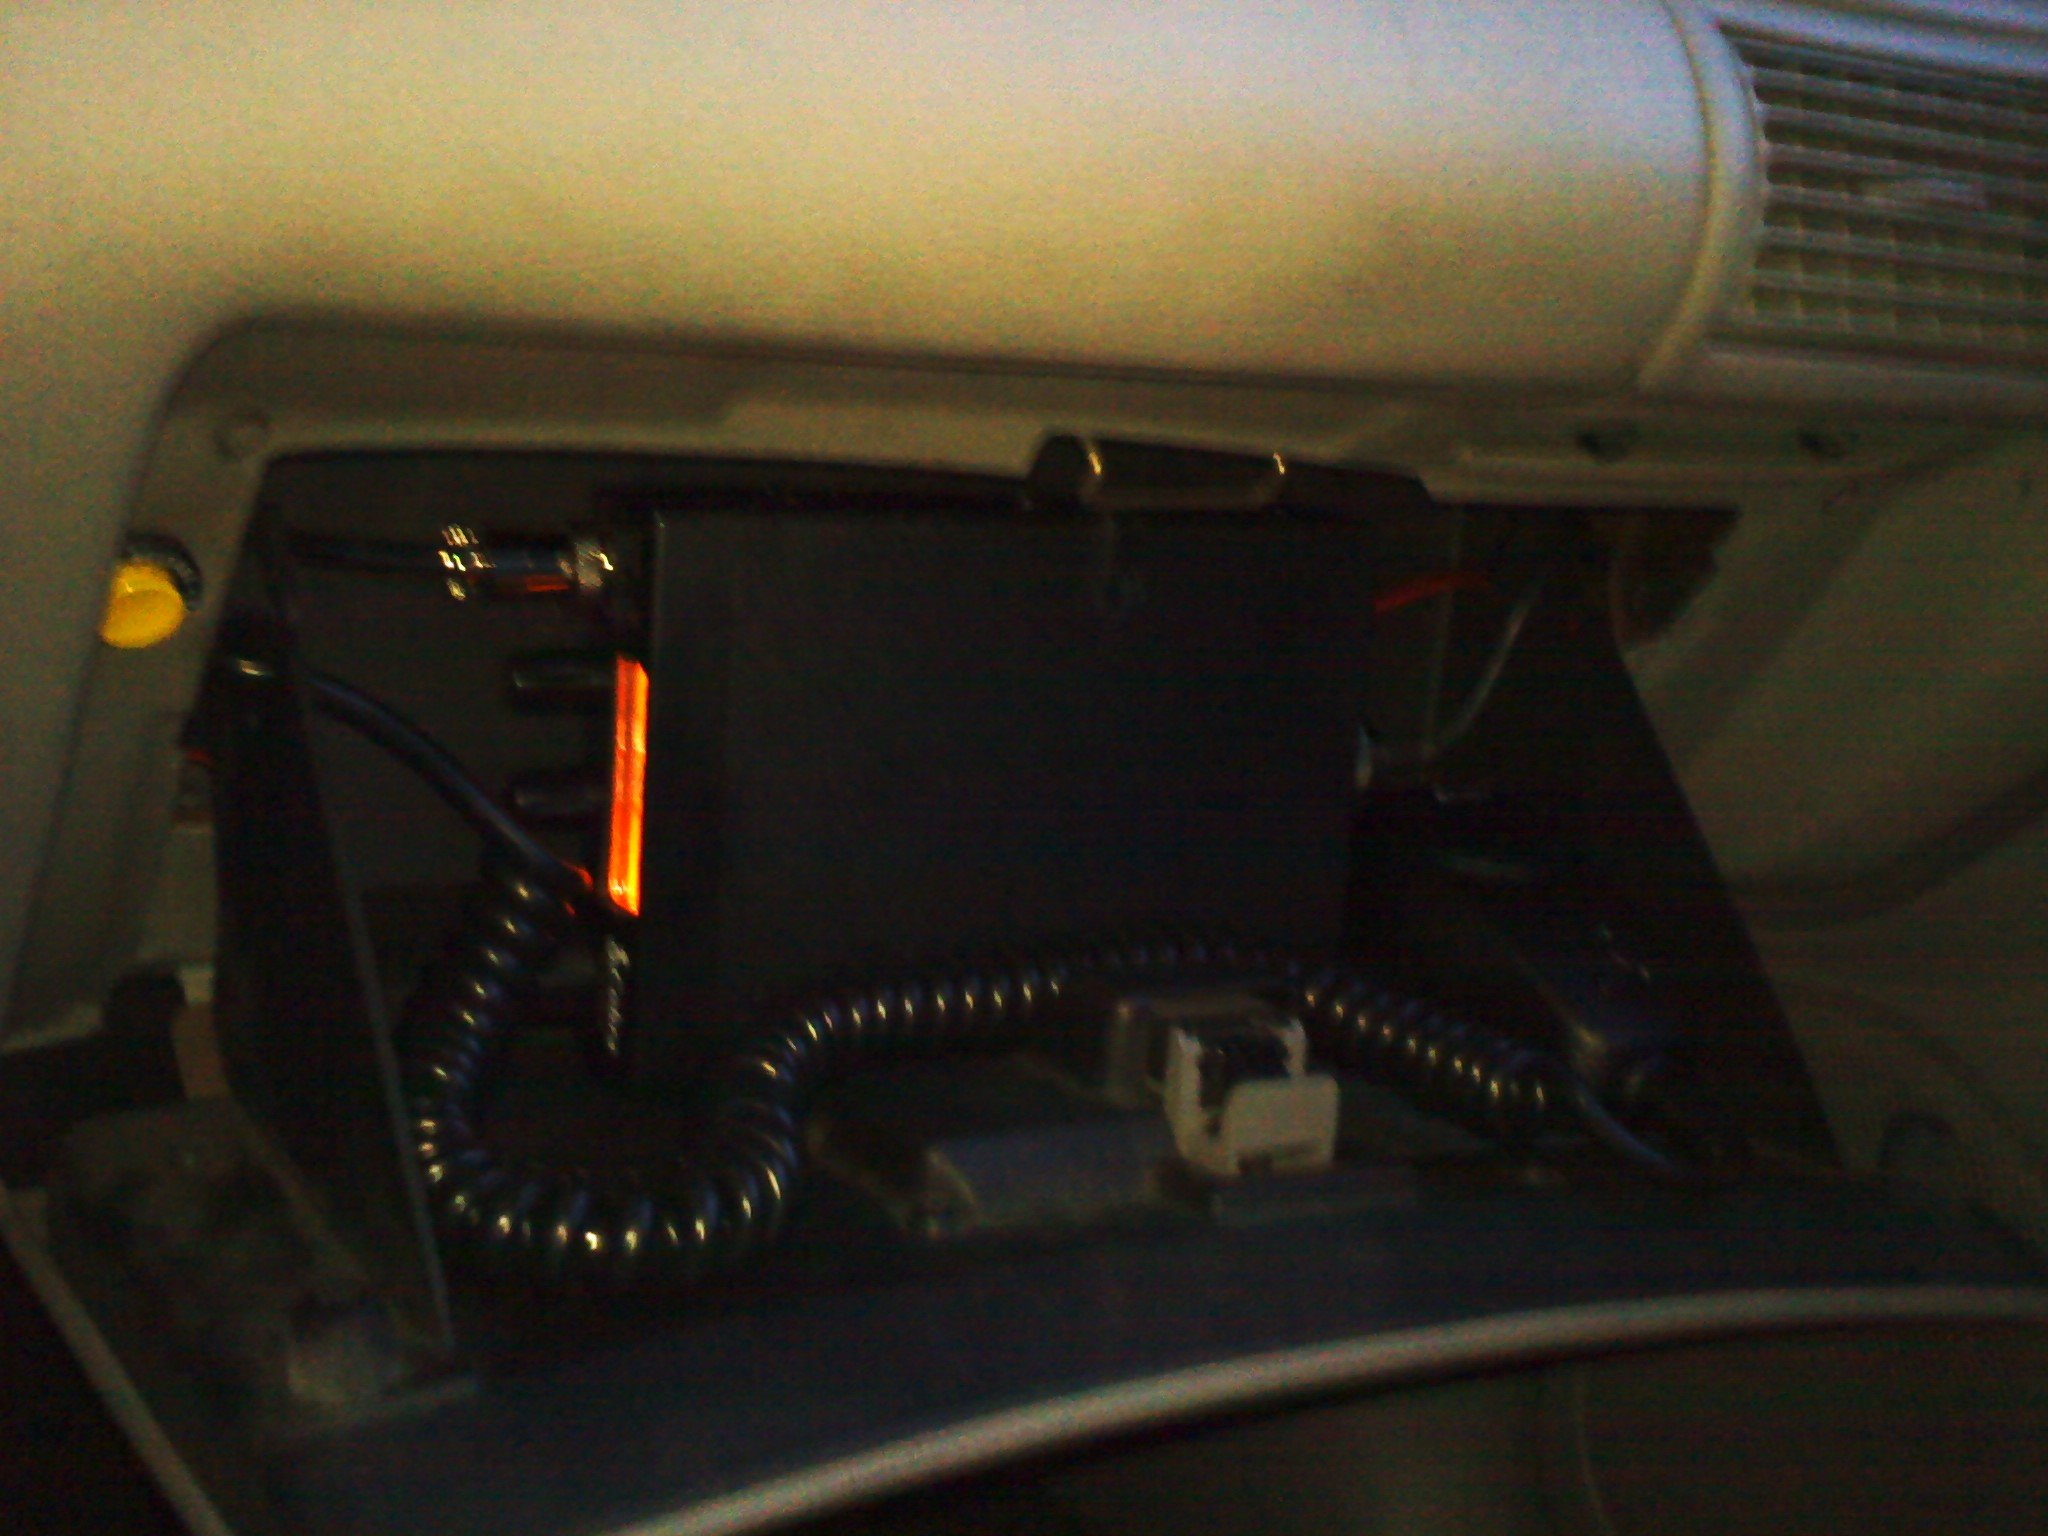 2012 Mustang Fuse Box Location Wiring Library 2003 Infiniti G35 Pasenger Compartment Diagram 2000 Cb Radio Touble Ford Forum Passenger Side